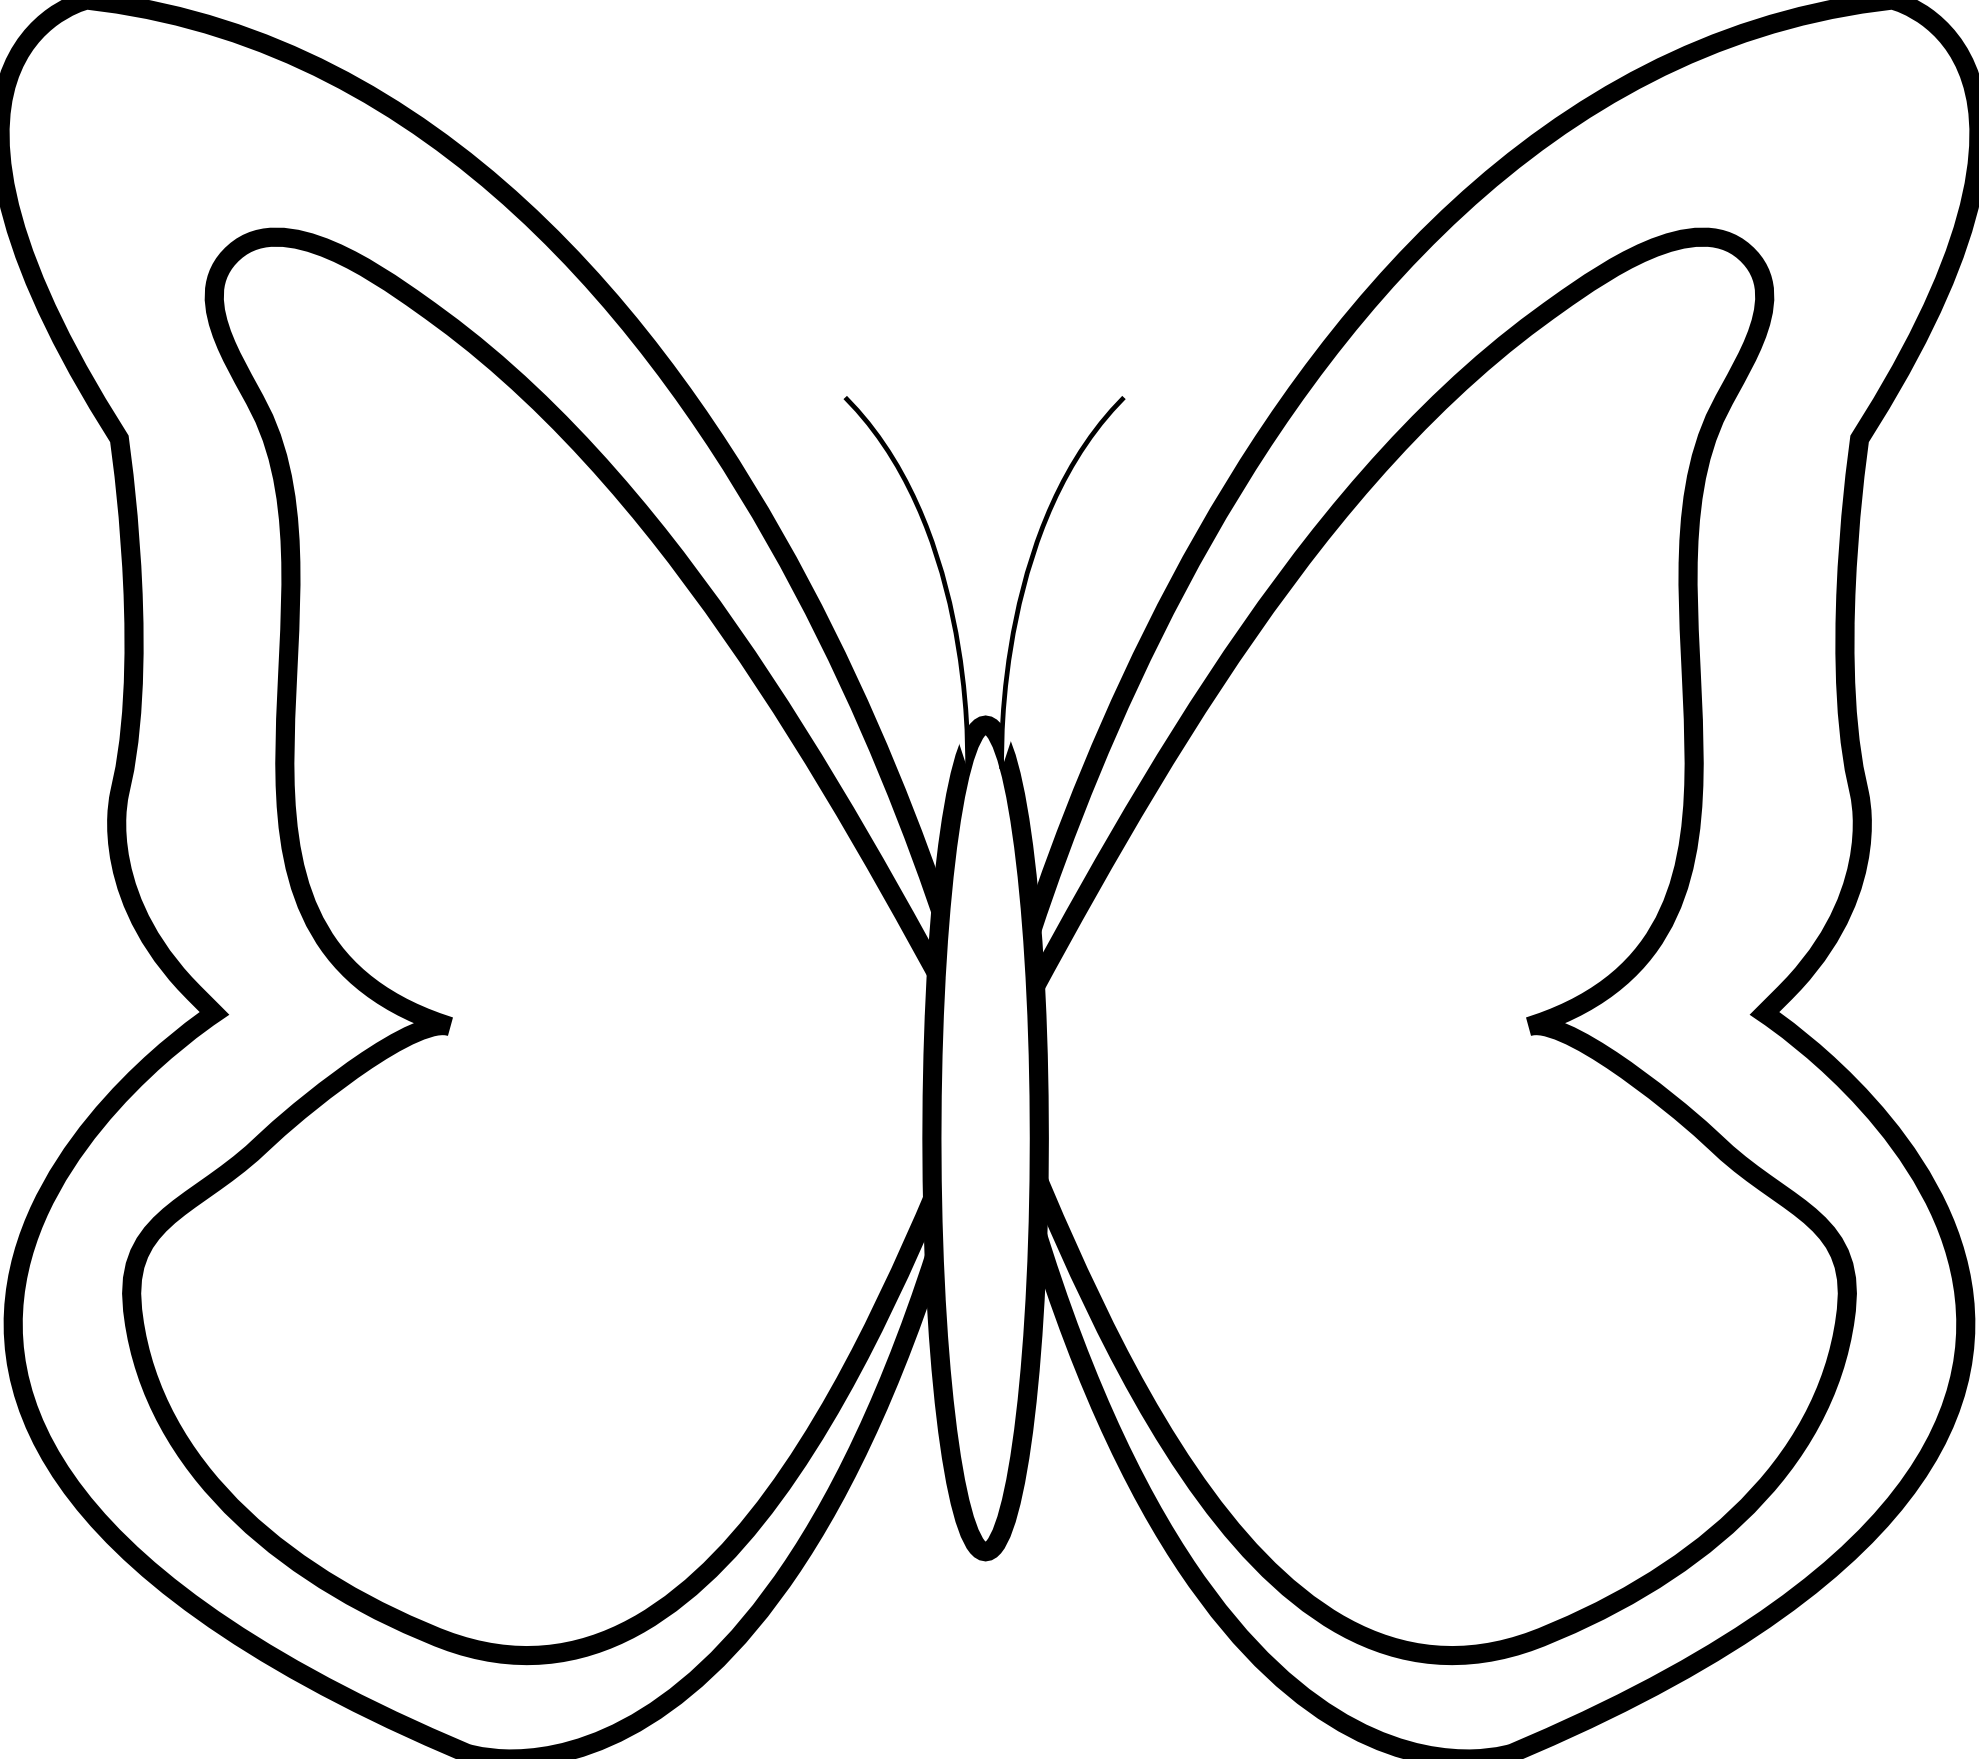 Butterfly Clip Art Black And White Id Bu-Butterfly Clip Art Black And White Id Buzzerg-10